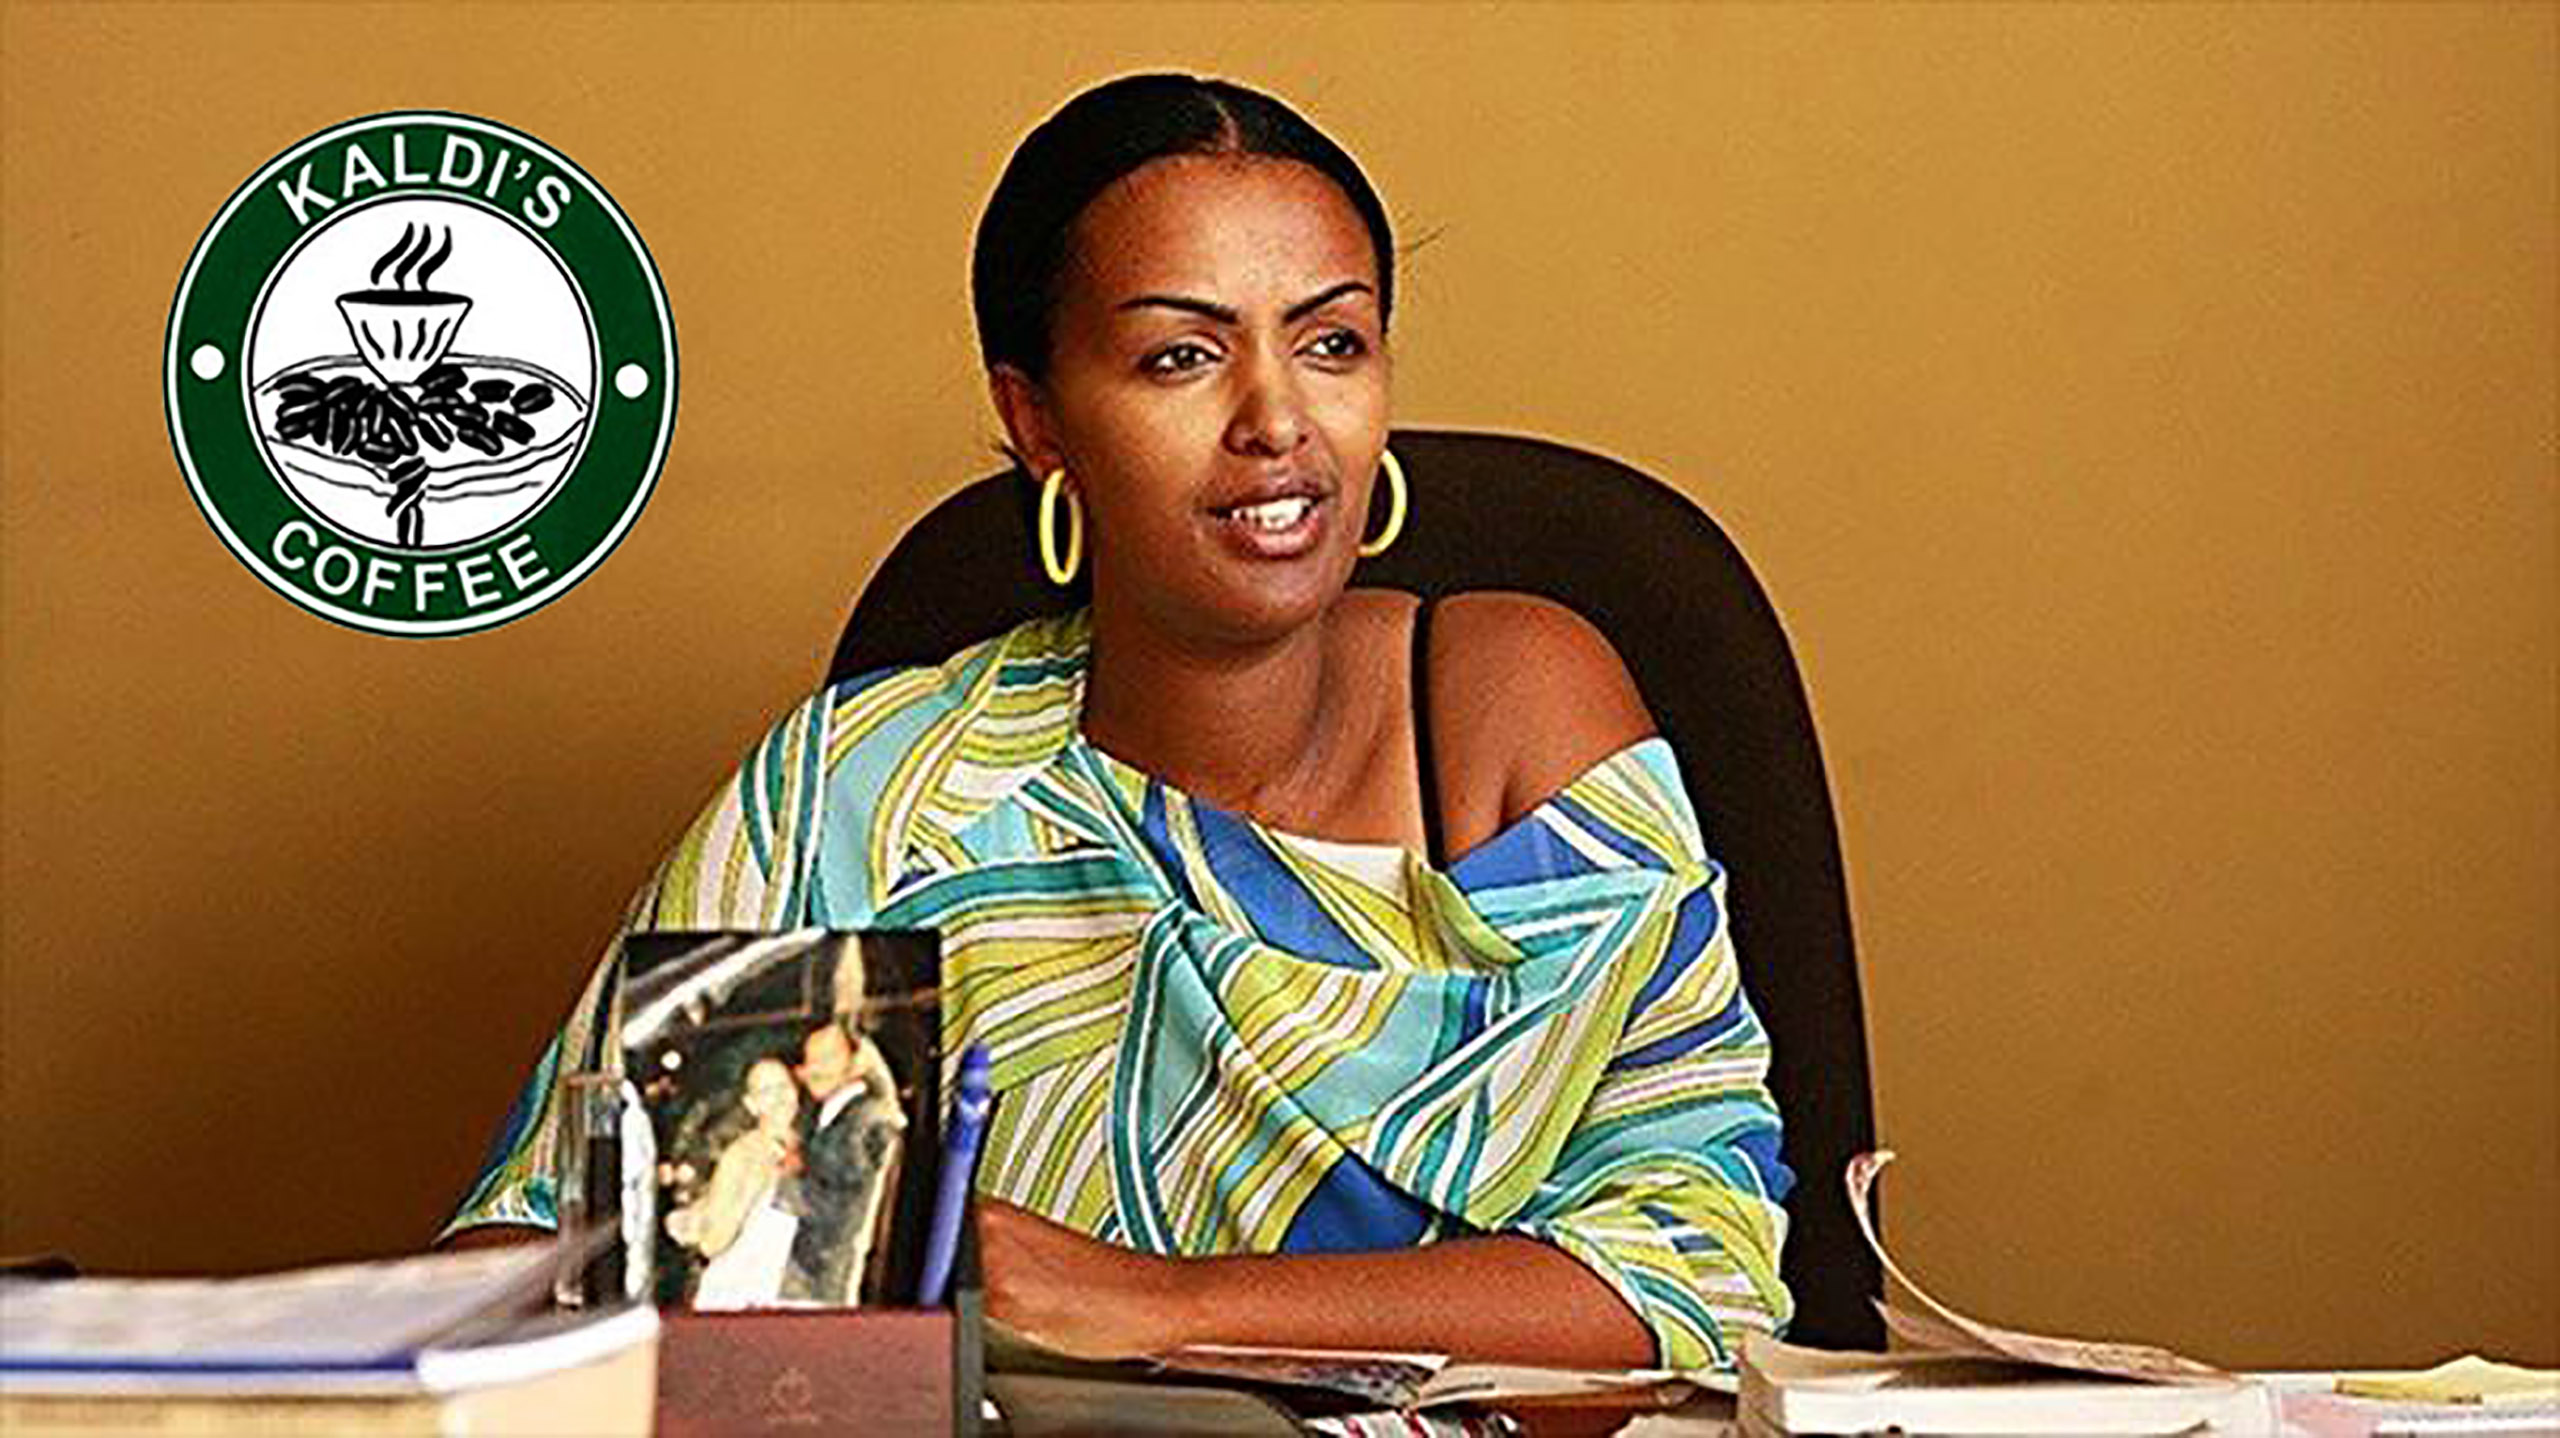 Tseday Asrat, founder of Kaldi's Coffee, Ethiopia's largest coffee shop chain, sitting at a desk with company logo behind her